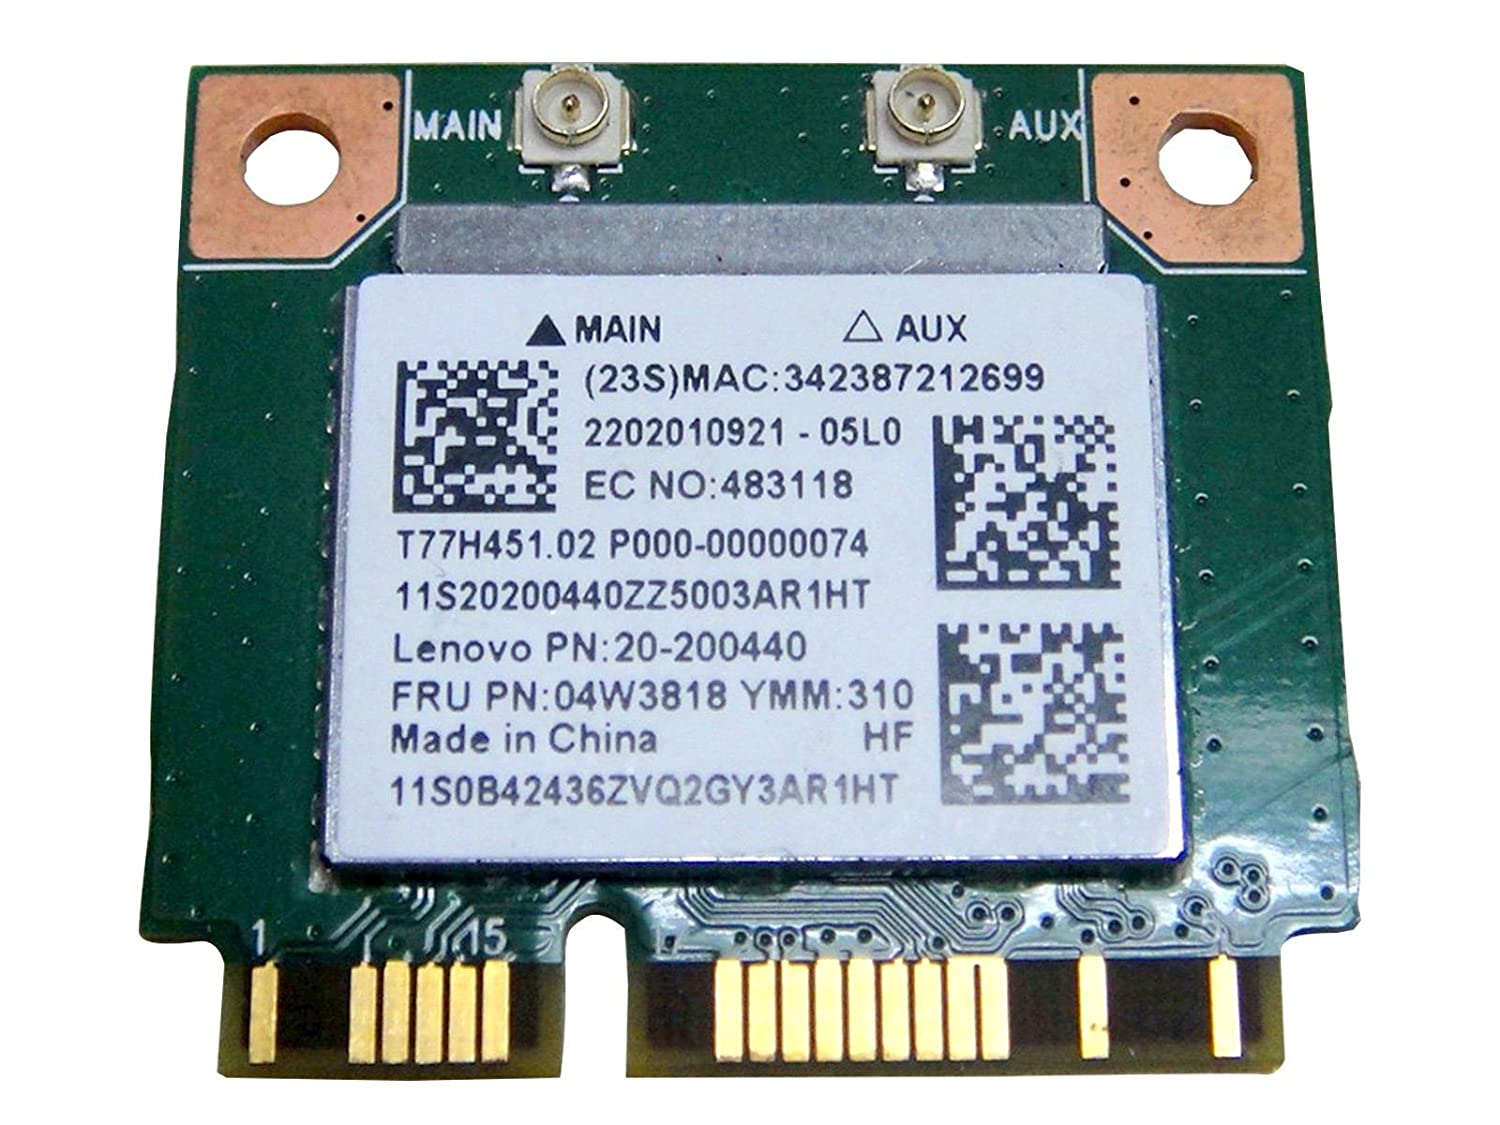 RealTek RTL8723BE Half Mini PCIe PCI-Express Wlan Wireless Wifi BT  Bluetooth Card 802 11n Replacement for IBM Lenovo Laptop 04W3818 20-200440